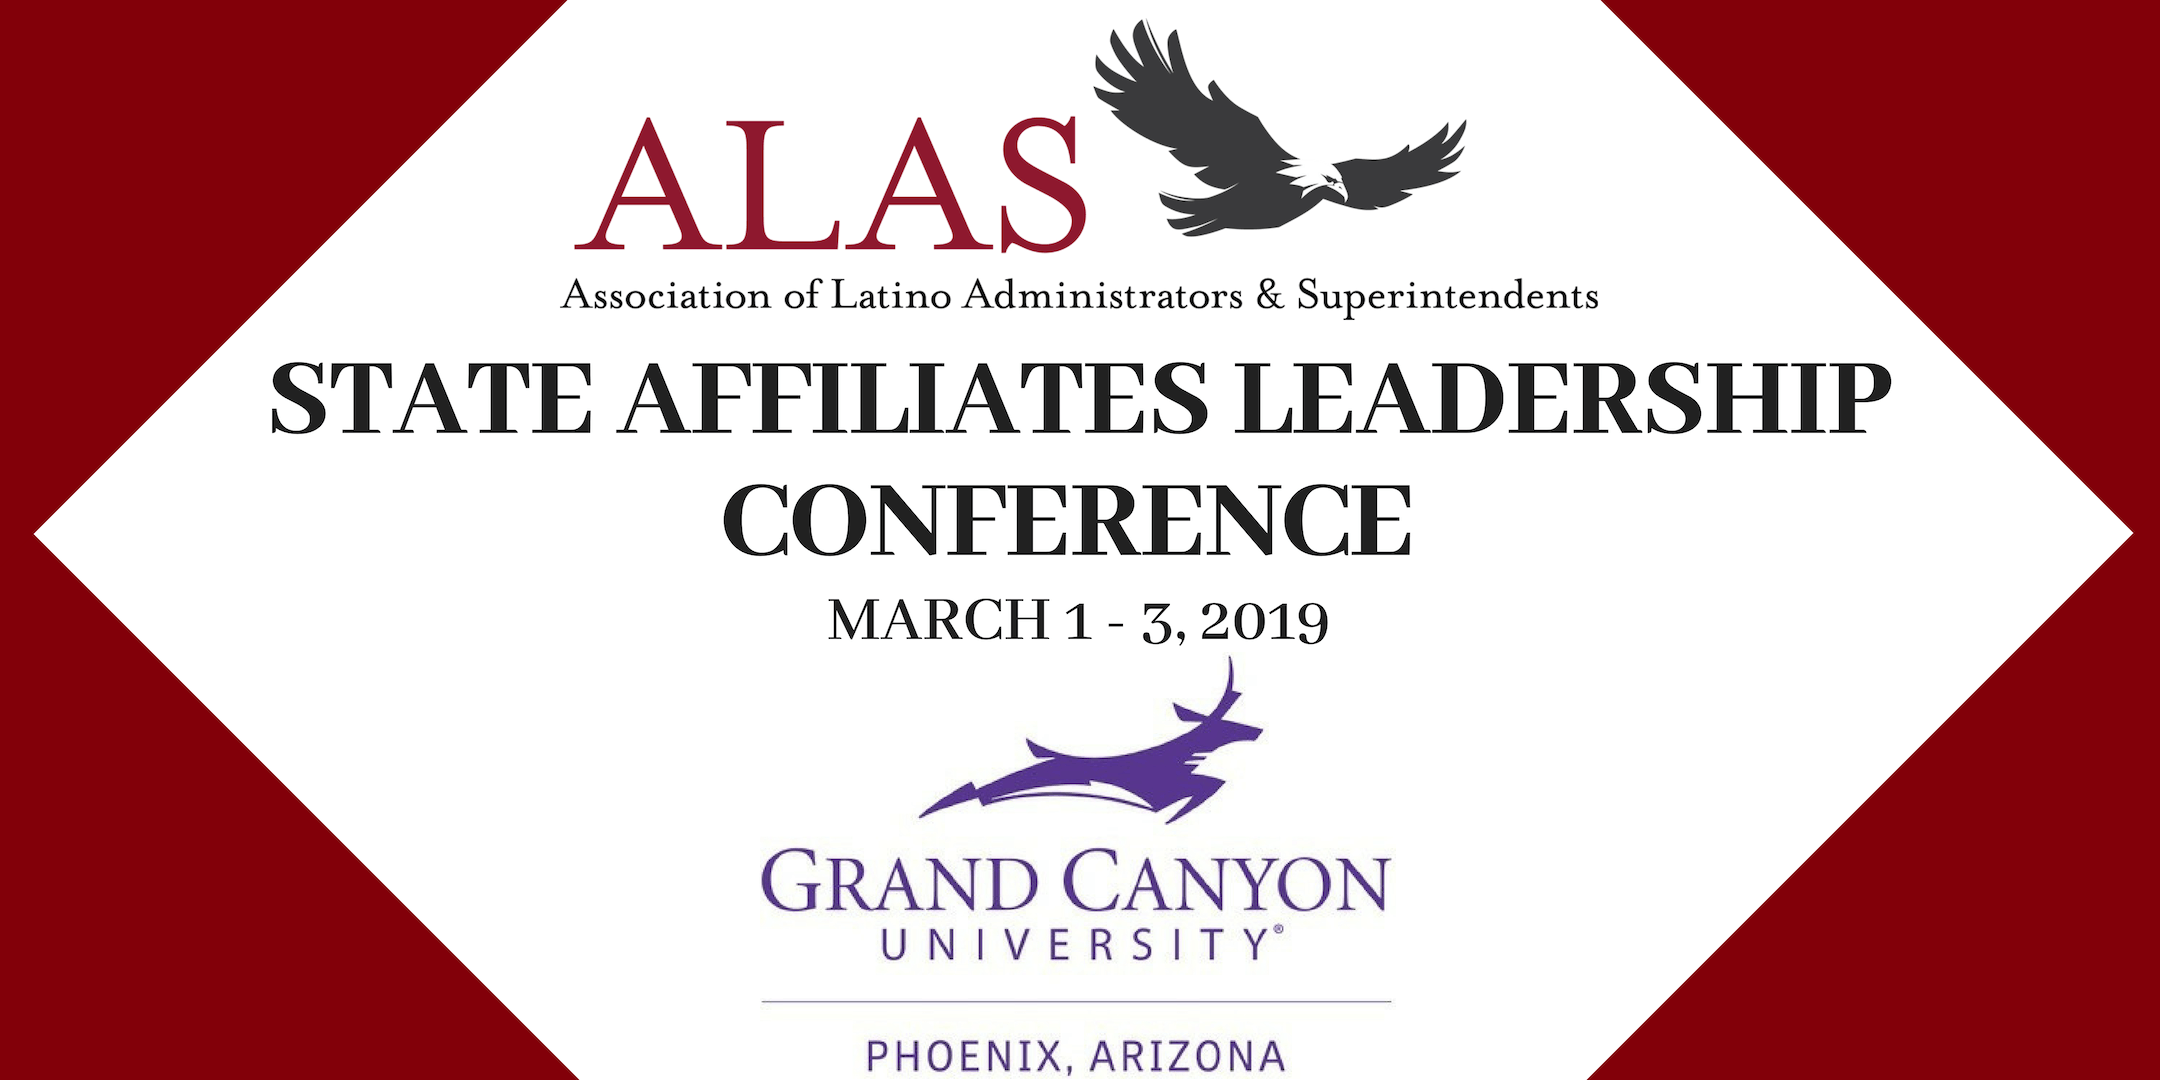 ALAS 2019 State Affiliates Leadership Conference